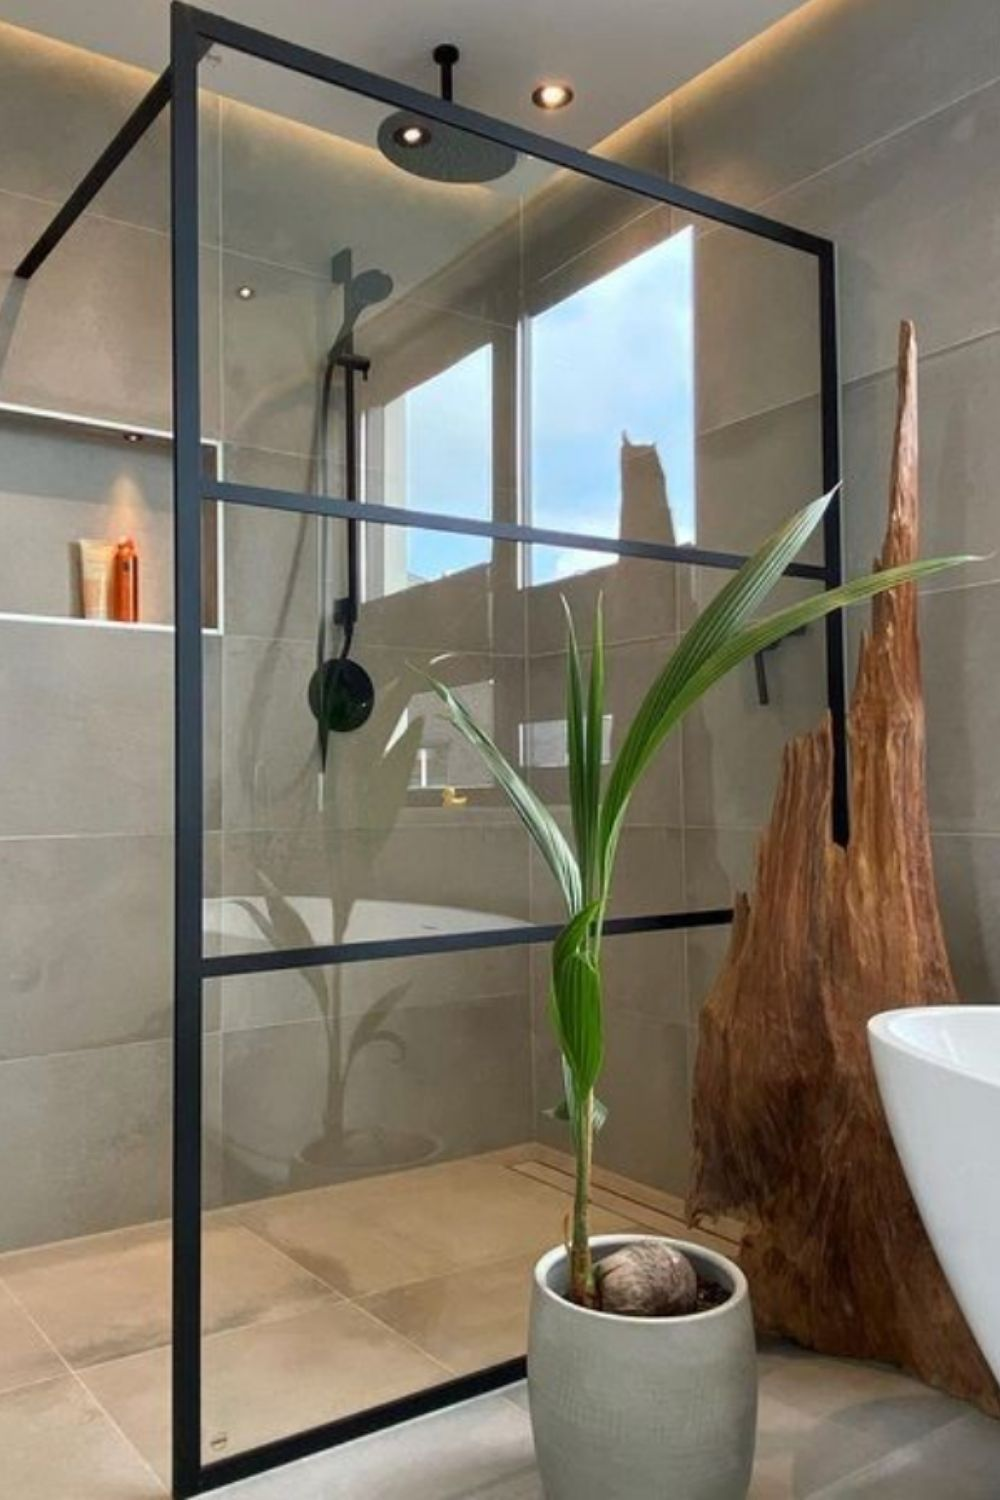 The trend of home decoration of the toilet glass partition design